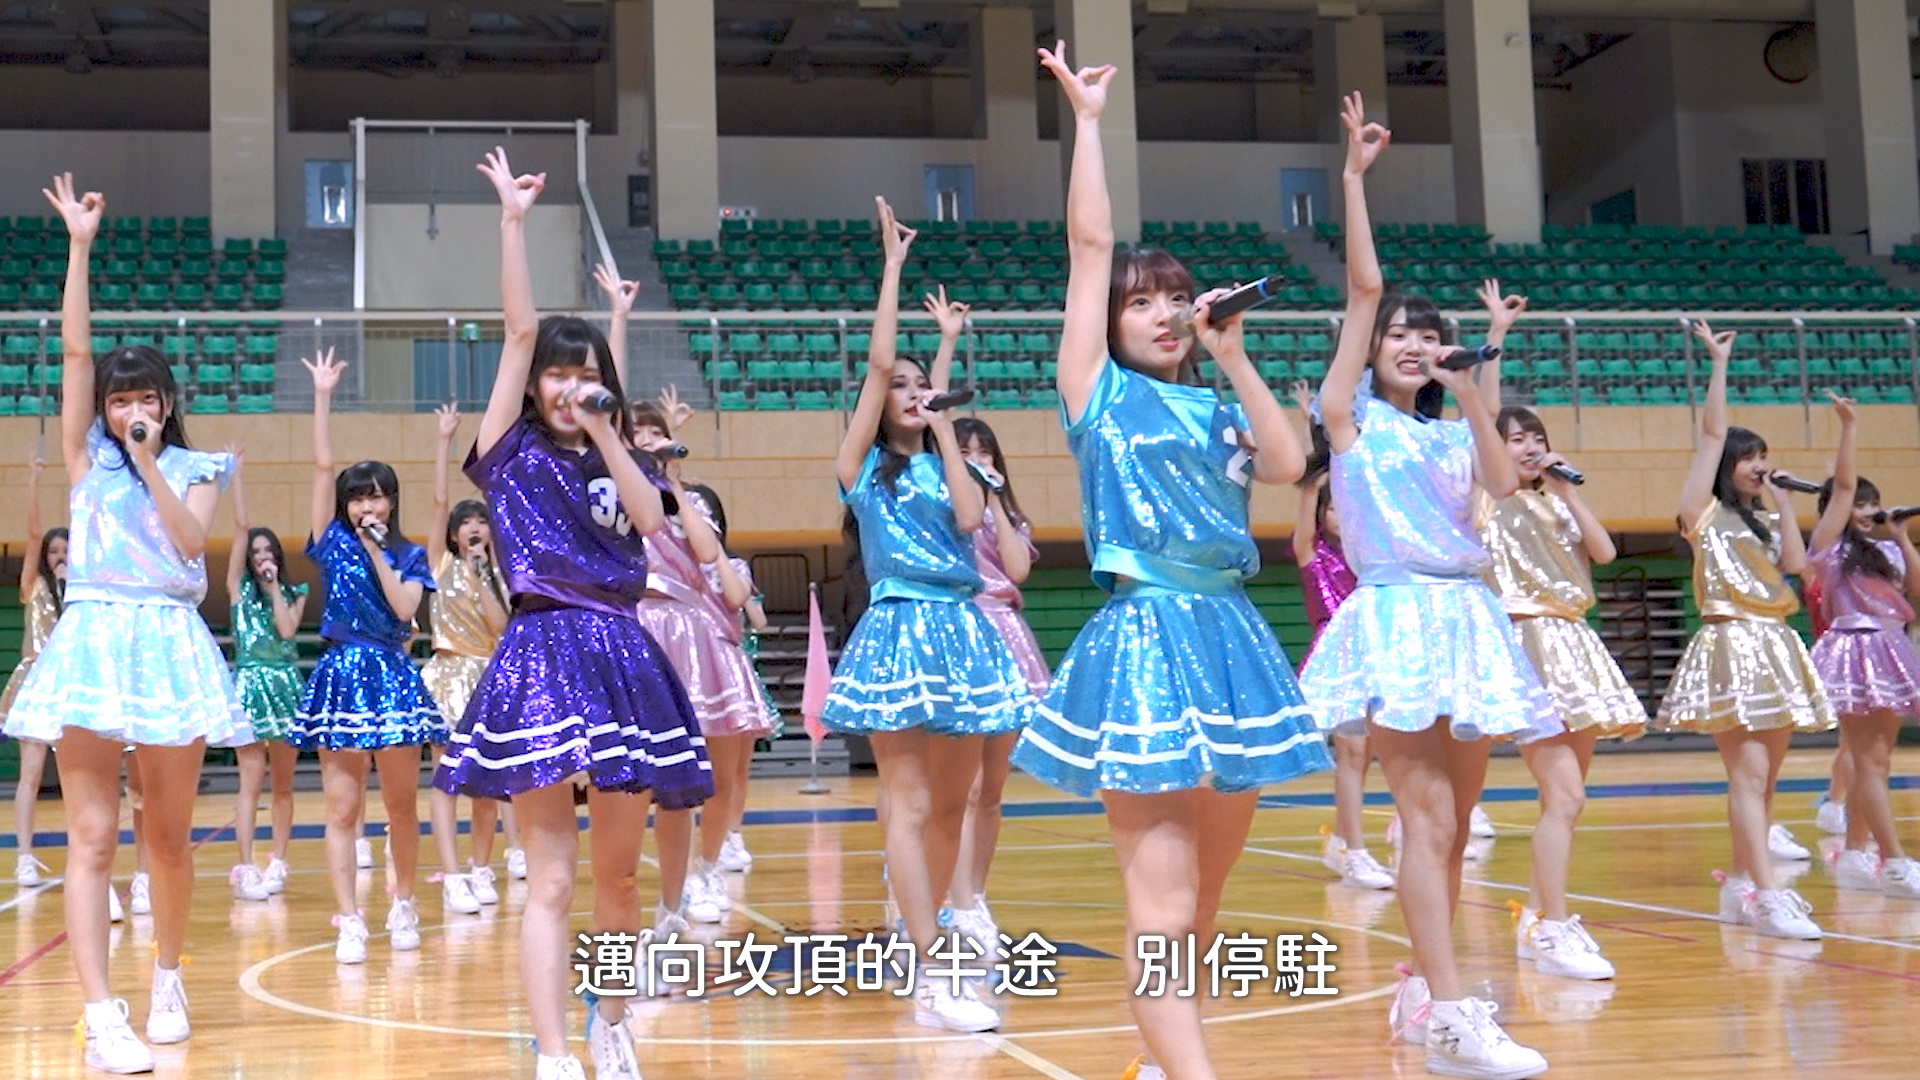 Team TP『夢へのルート(夢之路 )』©AKB48 GROUP ASIA FESTIVAL 2021 ONLINE executive committee